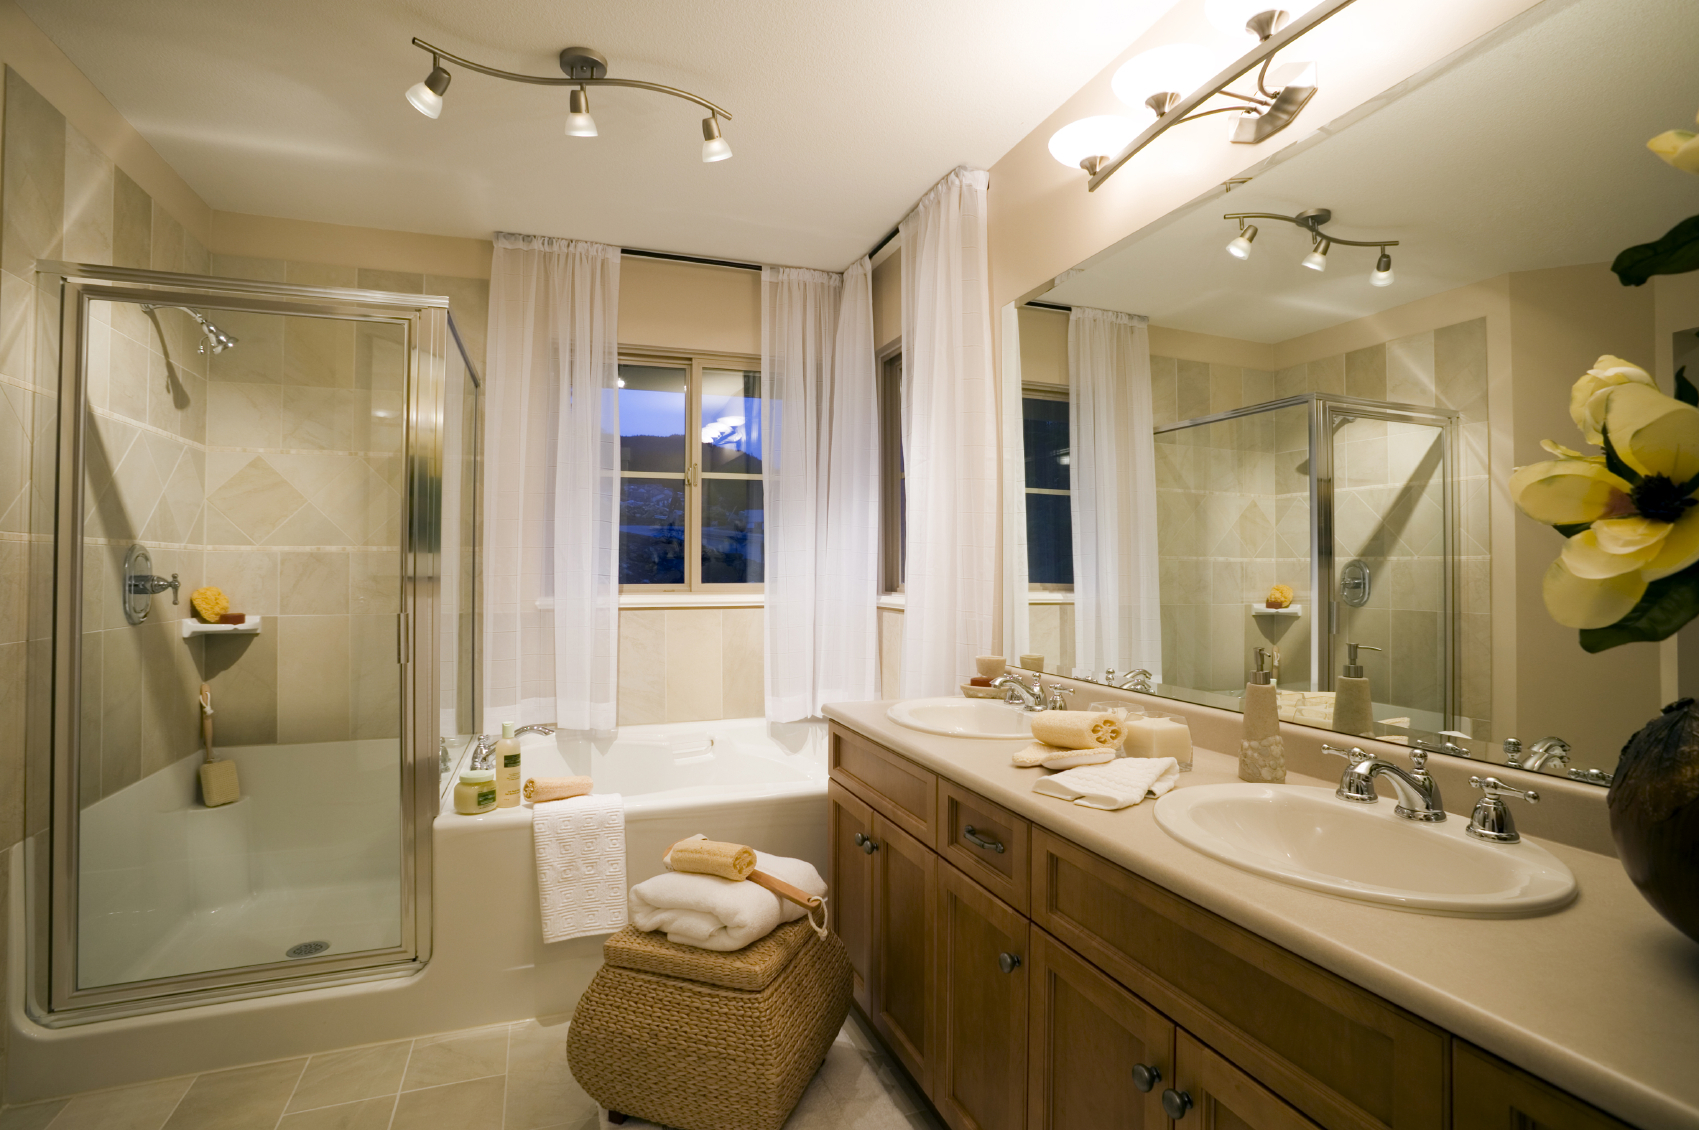 Bathrooms united building remodeling painting for Bathroom contractors